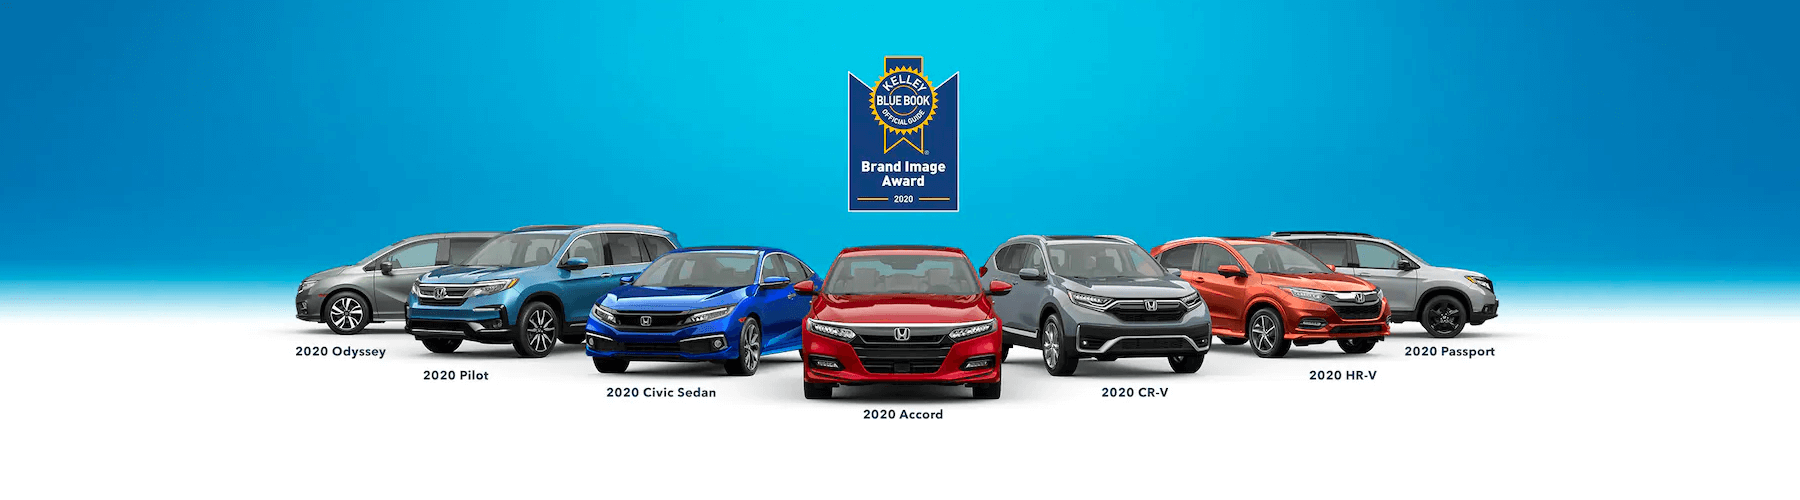 Honda Kelley Blue Book 2020 Brand Image Award Slider